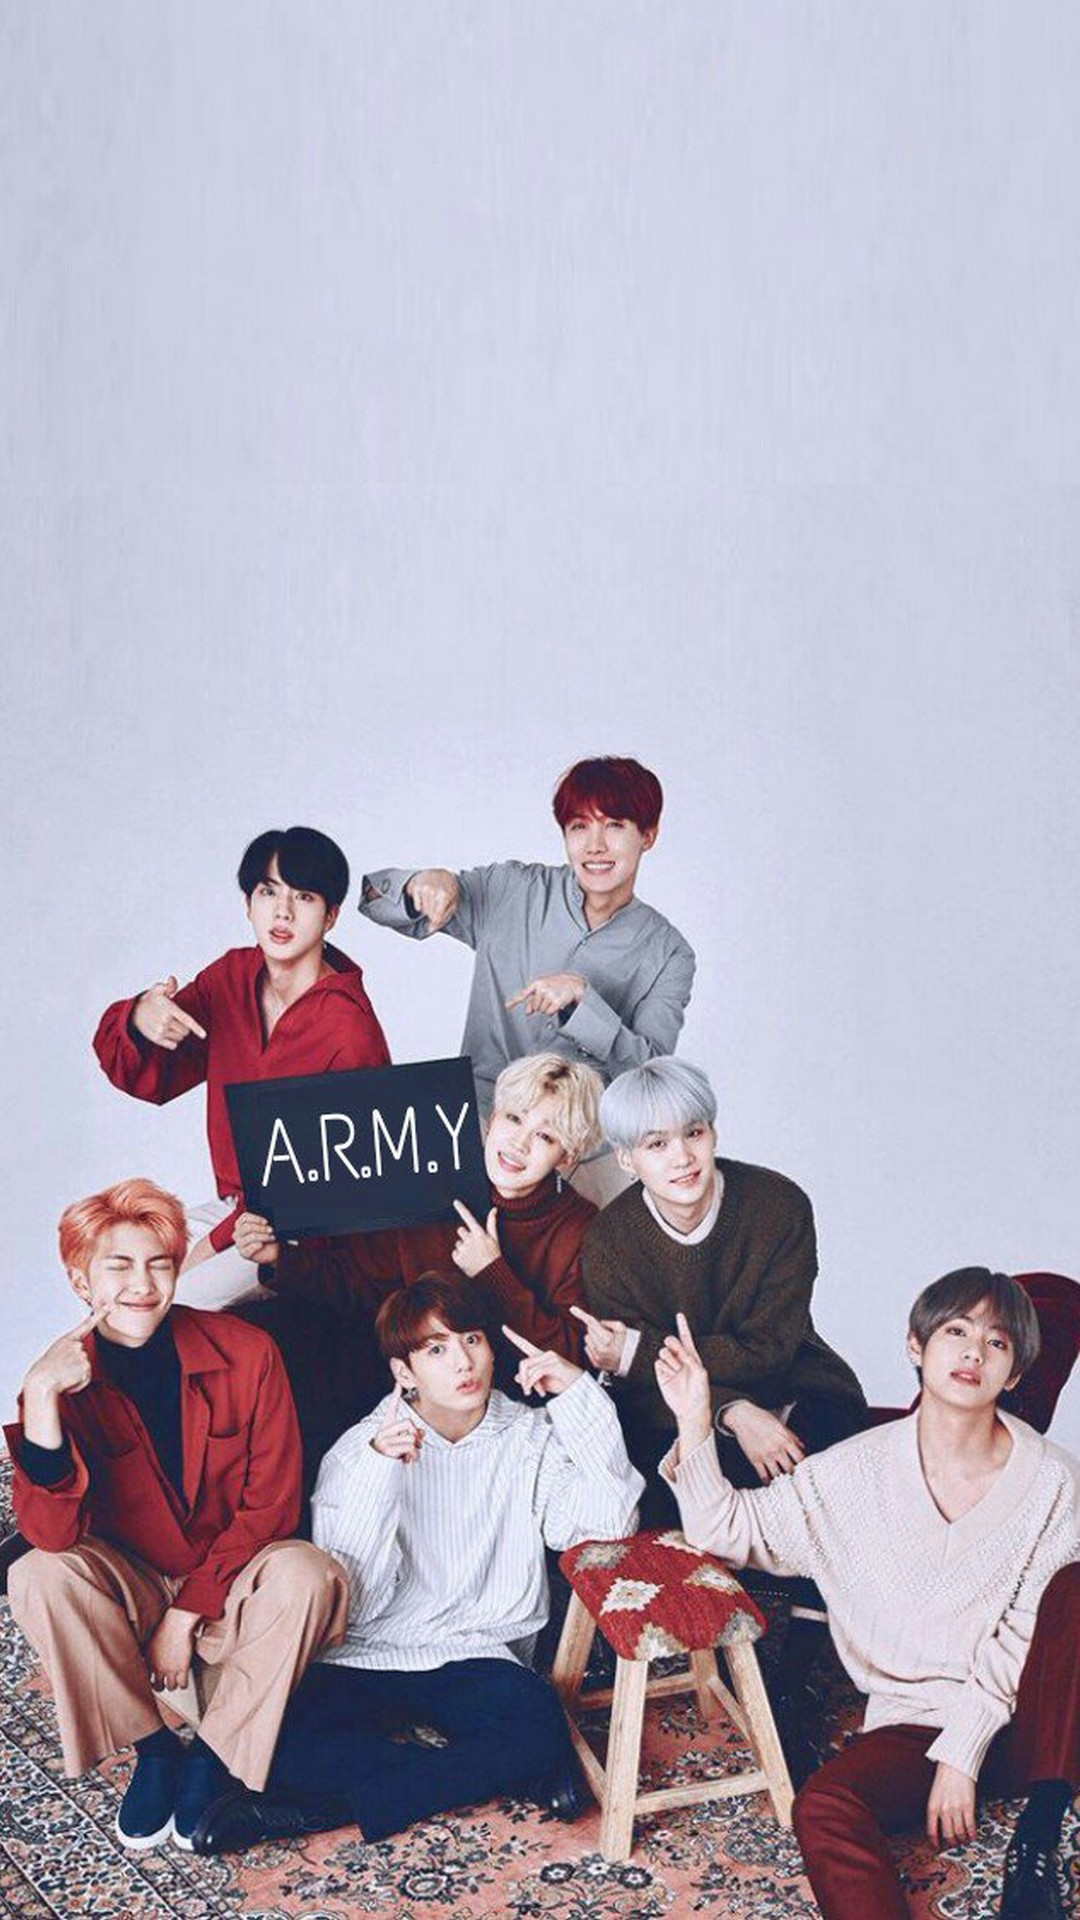 BTS Wallpaper iPhone with high-resolution 1080x1920 pixel. You can use this wallpaper for your iPhone 5, 6, 7, 8, X, XS, XR backgrounds, Mobile Screensaver, or iPad Lock Screen